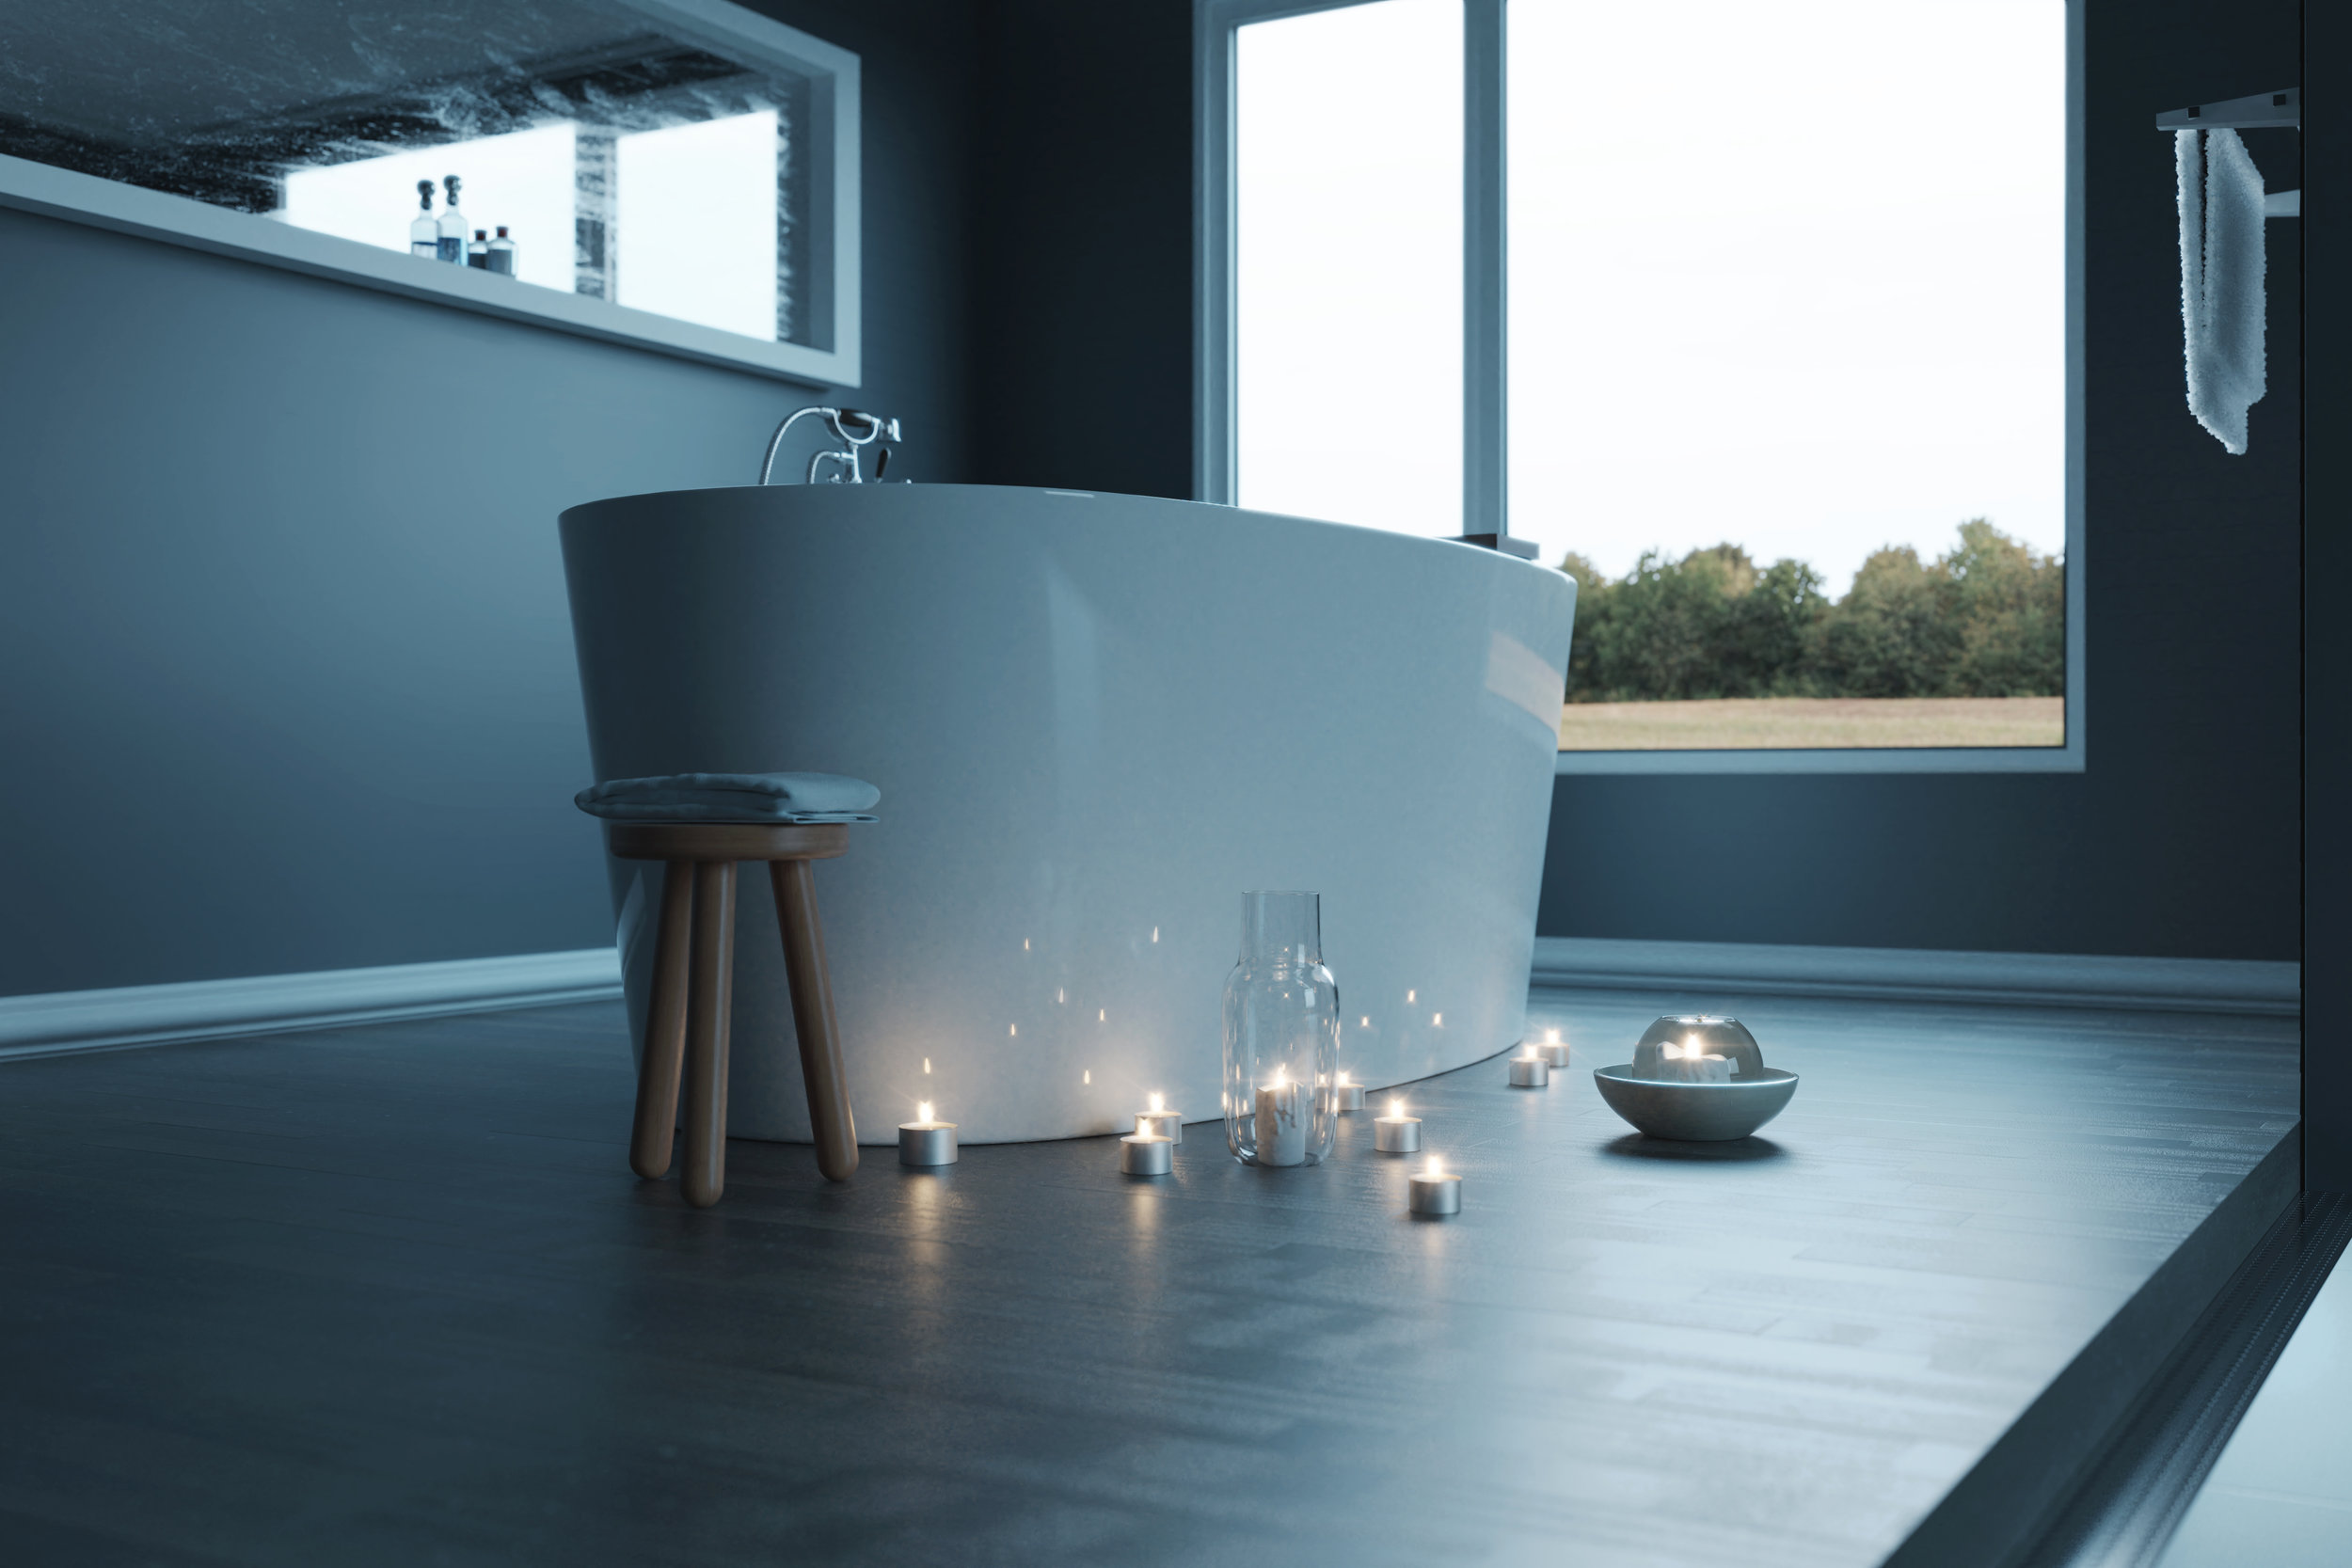 free standing sanctuary tub for interior design with a view and candles